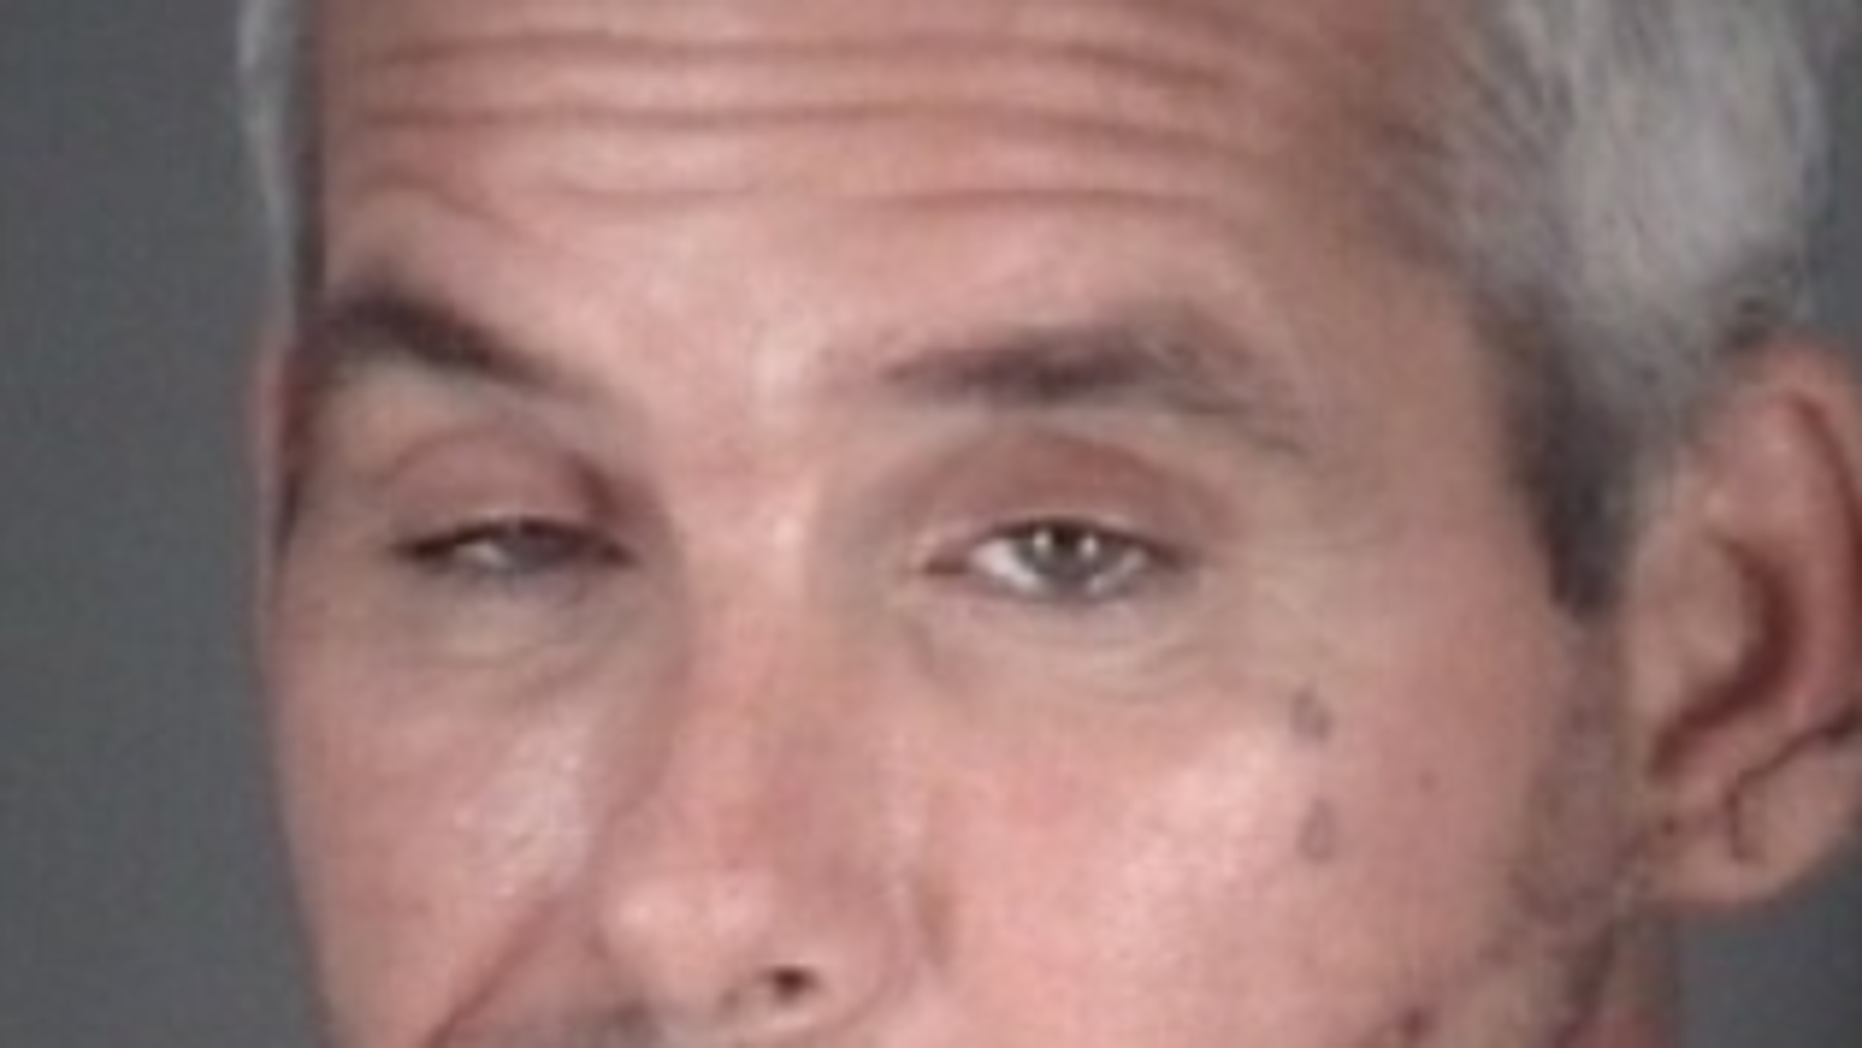 Peter Elacqua was arrested Monday for allegedly throwing a burrito at his girlfriend's face last week.